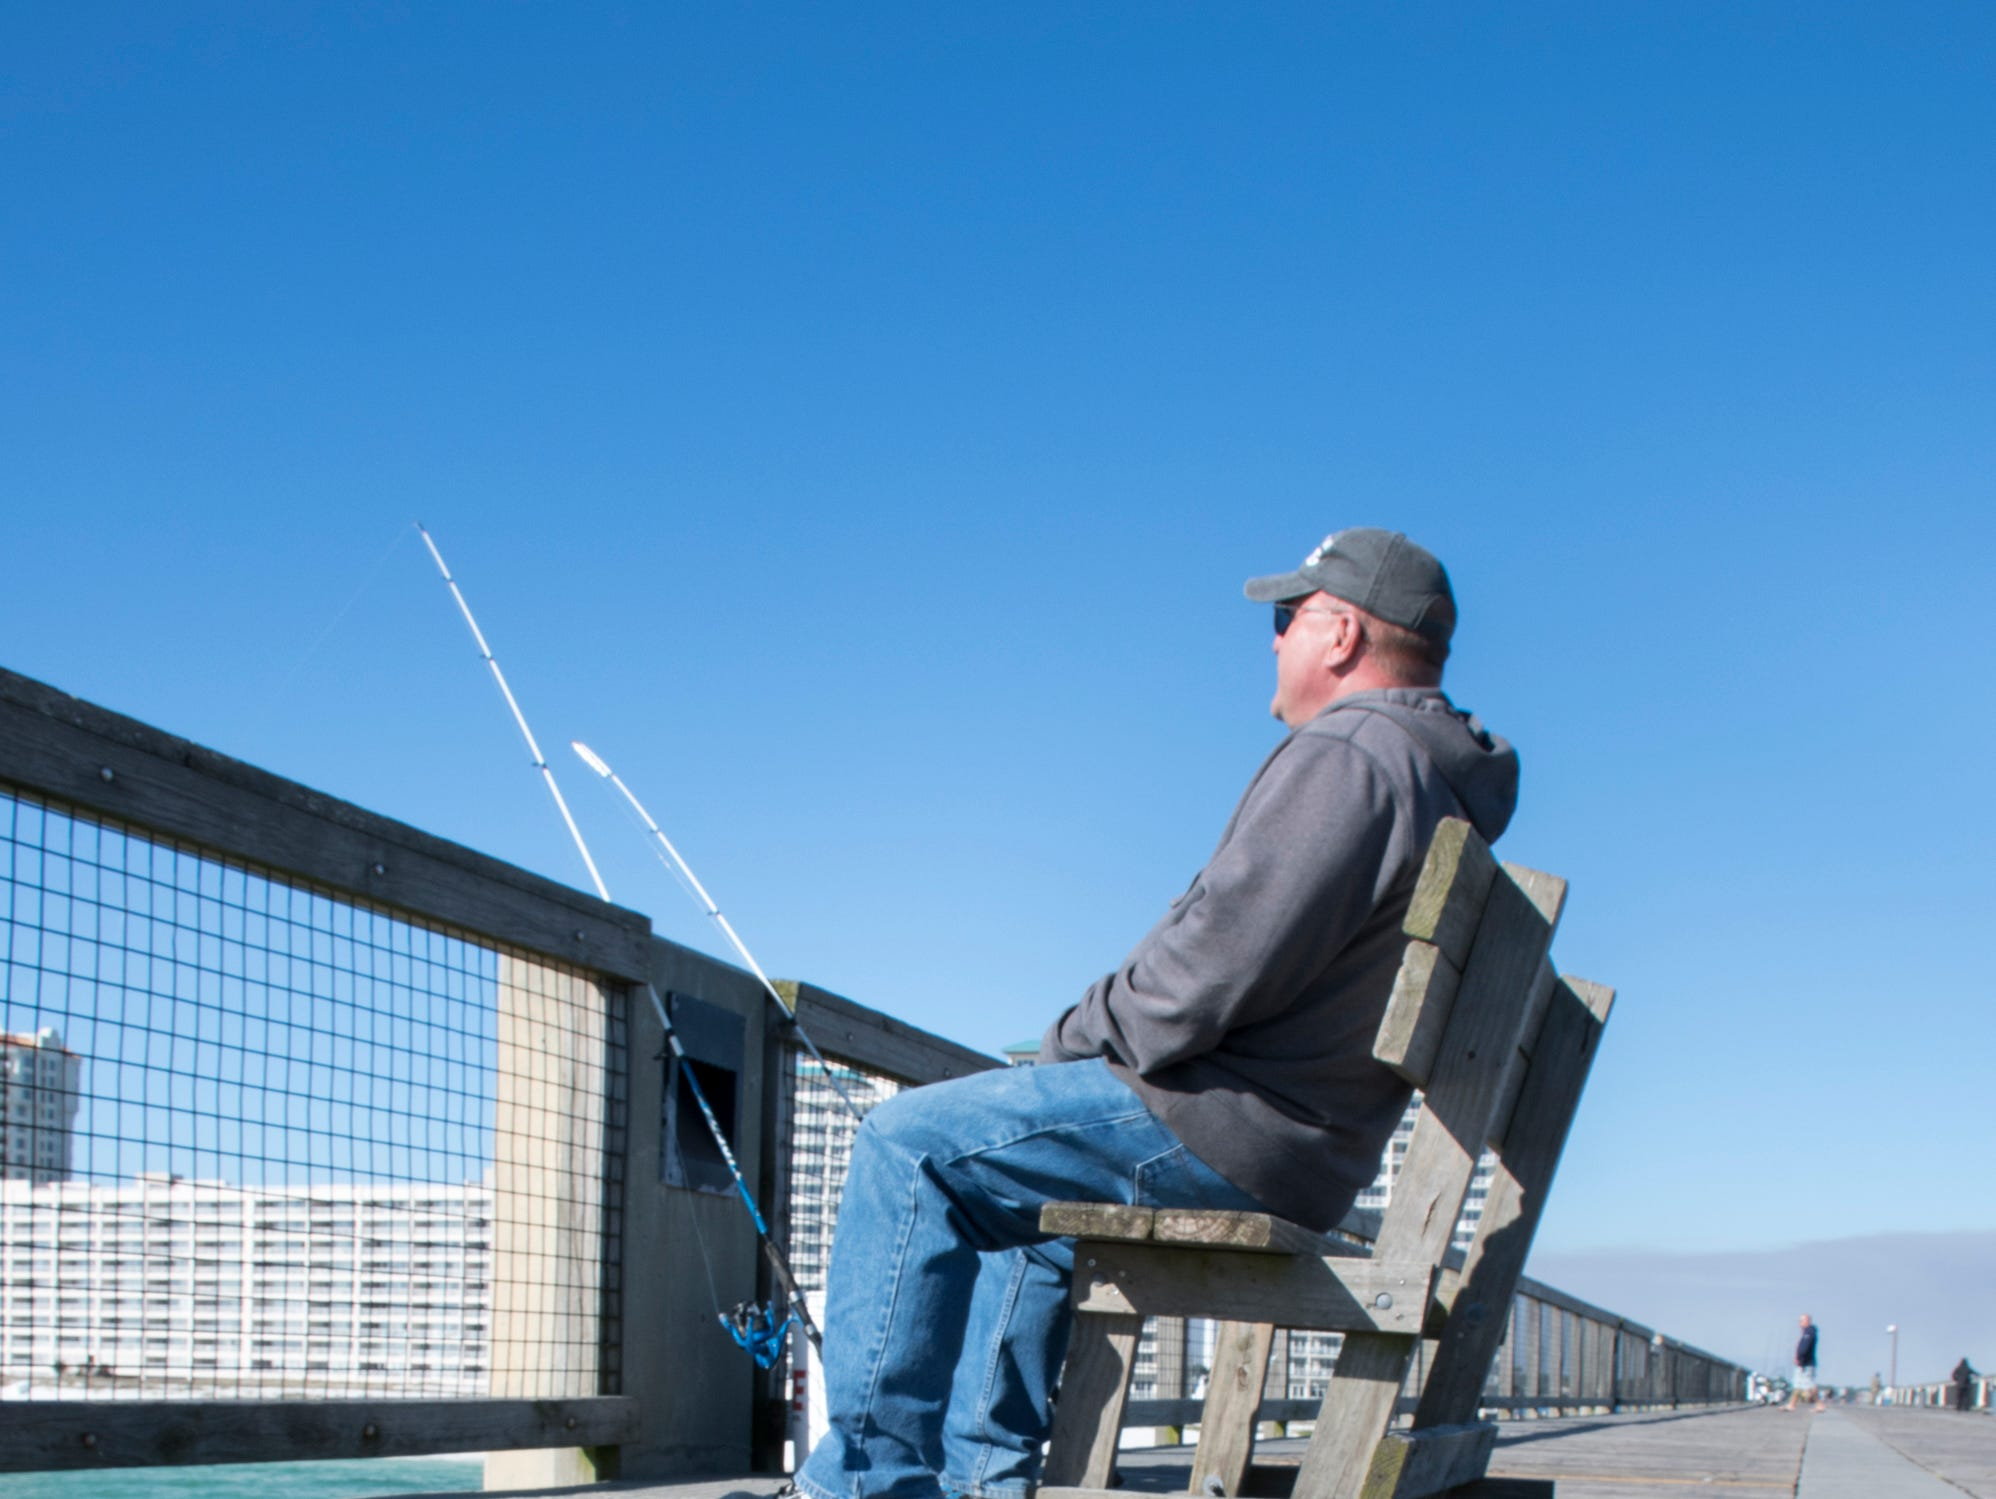 Angler Russ Kaiser, of Kansas City, Missouri, fishes from the pier in Navarre on Friday, January 11, 2019.  The pier is slated to get a major makeover this year complete with new decking material.